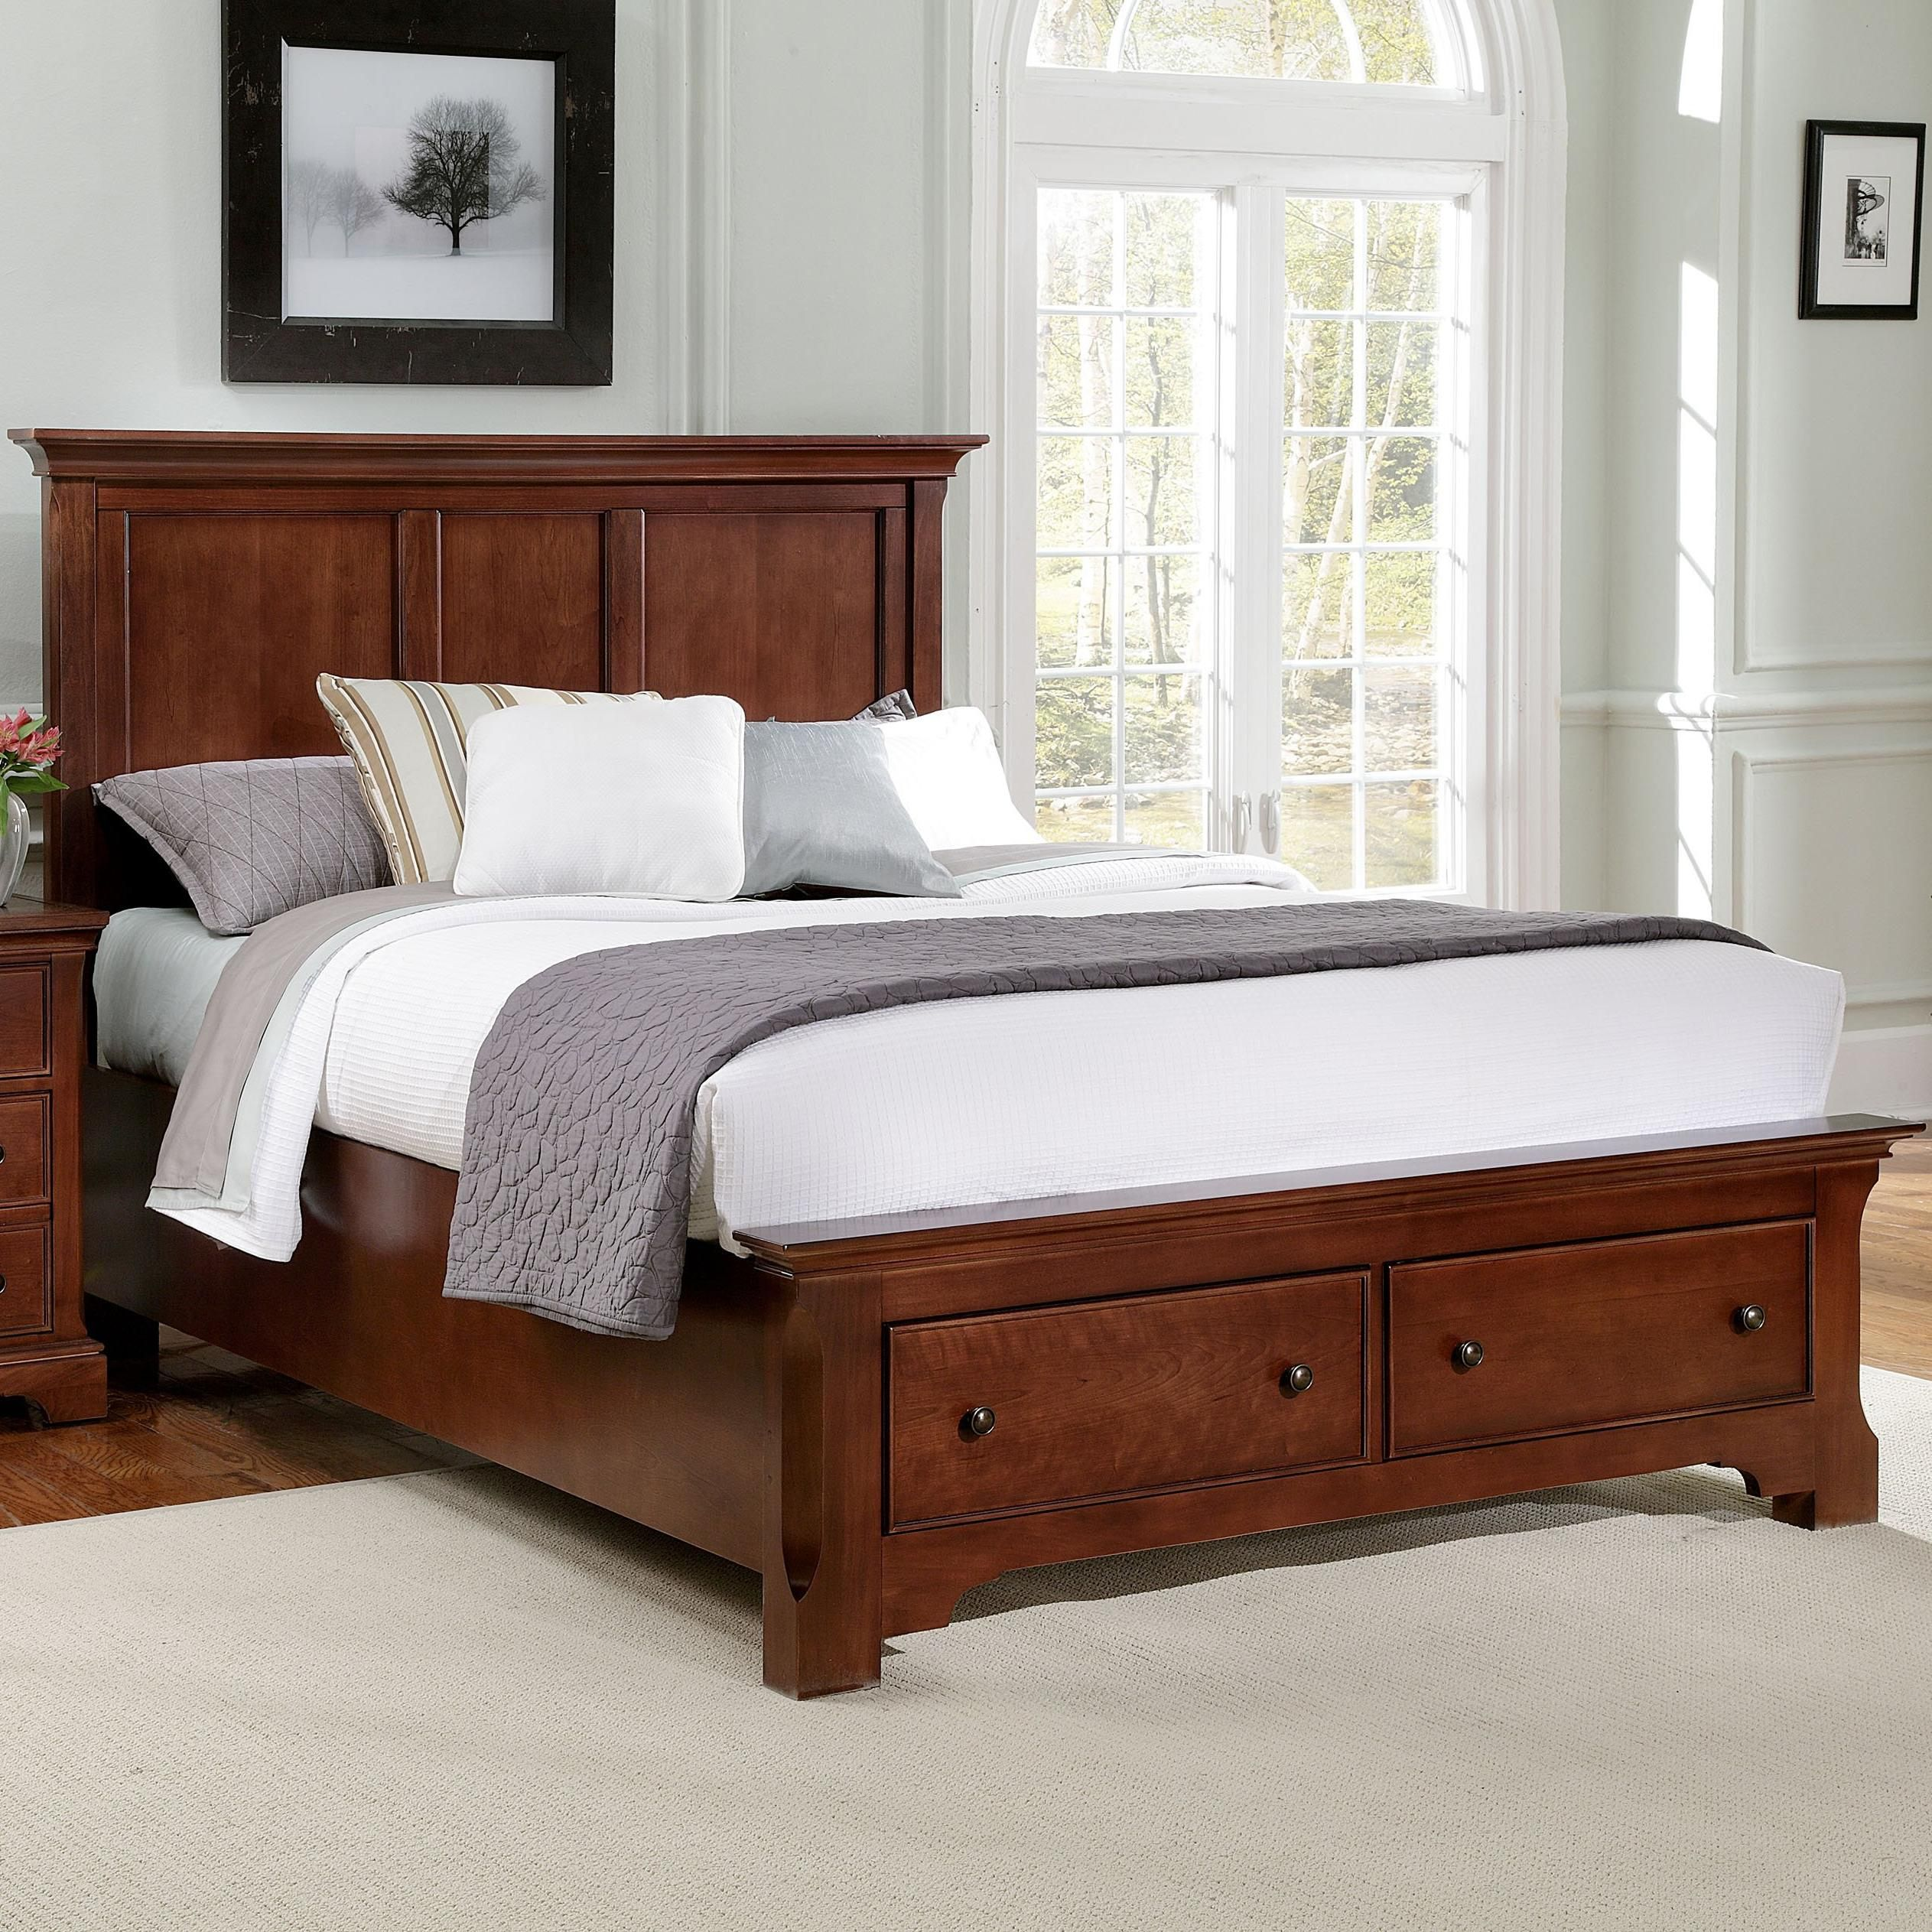 Forsyth Queen Headboard And Footboard Storage Bed By